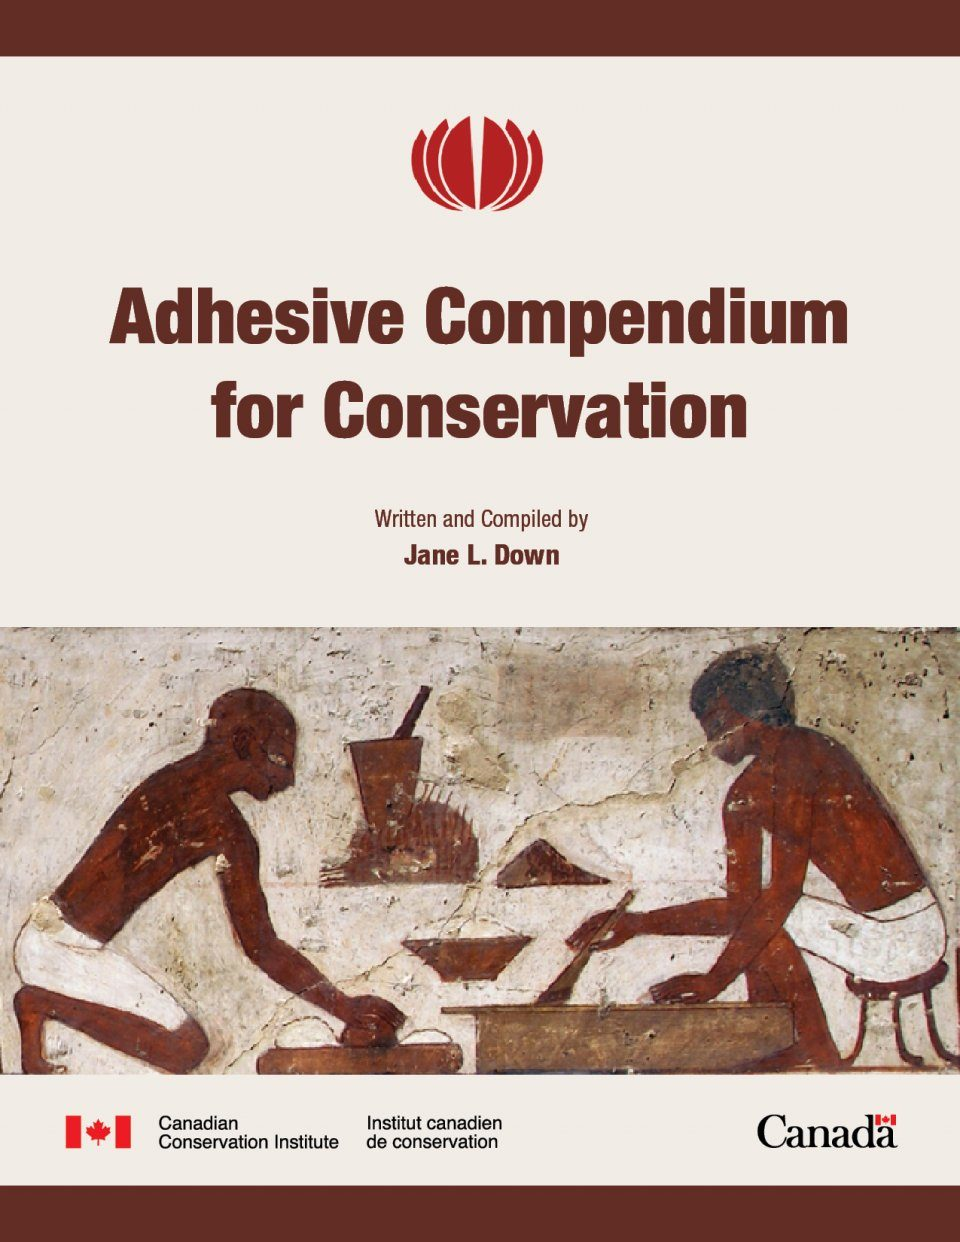 Adhesive Compendium for Conservation